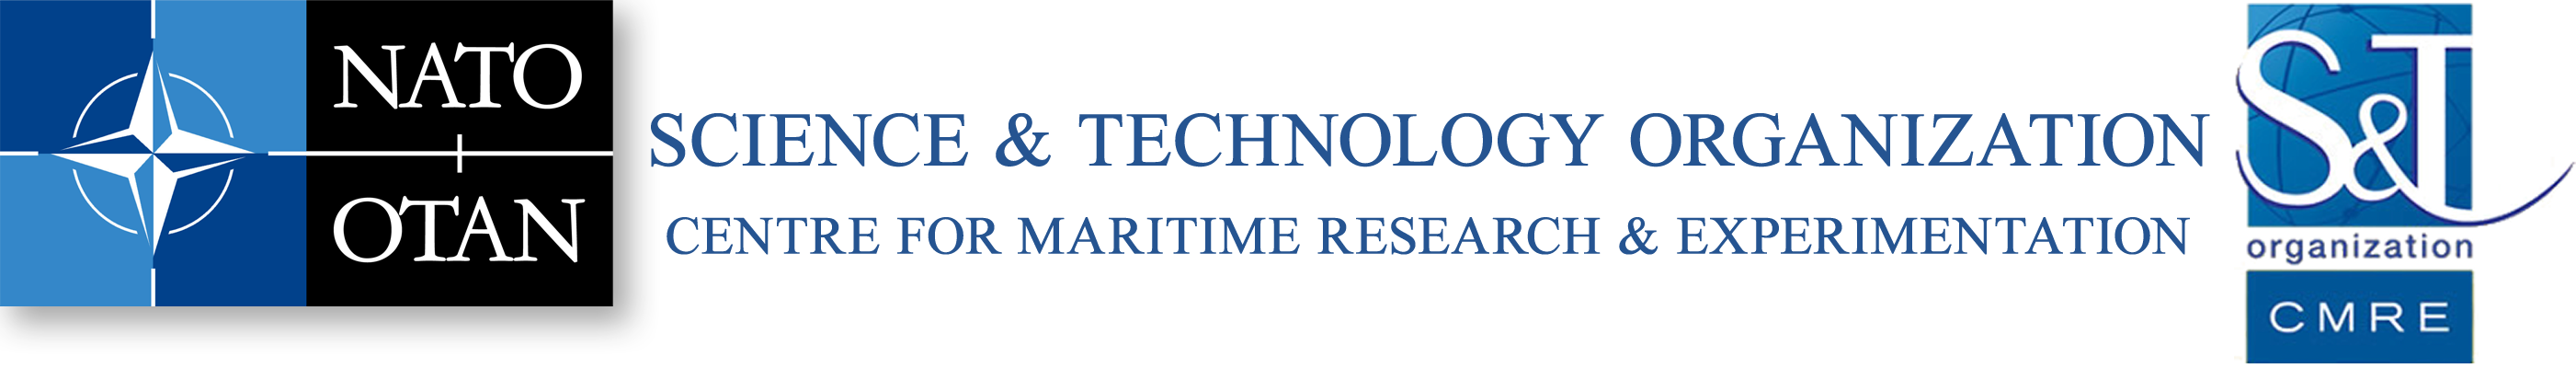 NATO Centre for Maritime Research and Experimentation (CMRE) logo